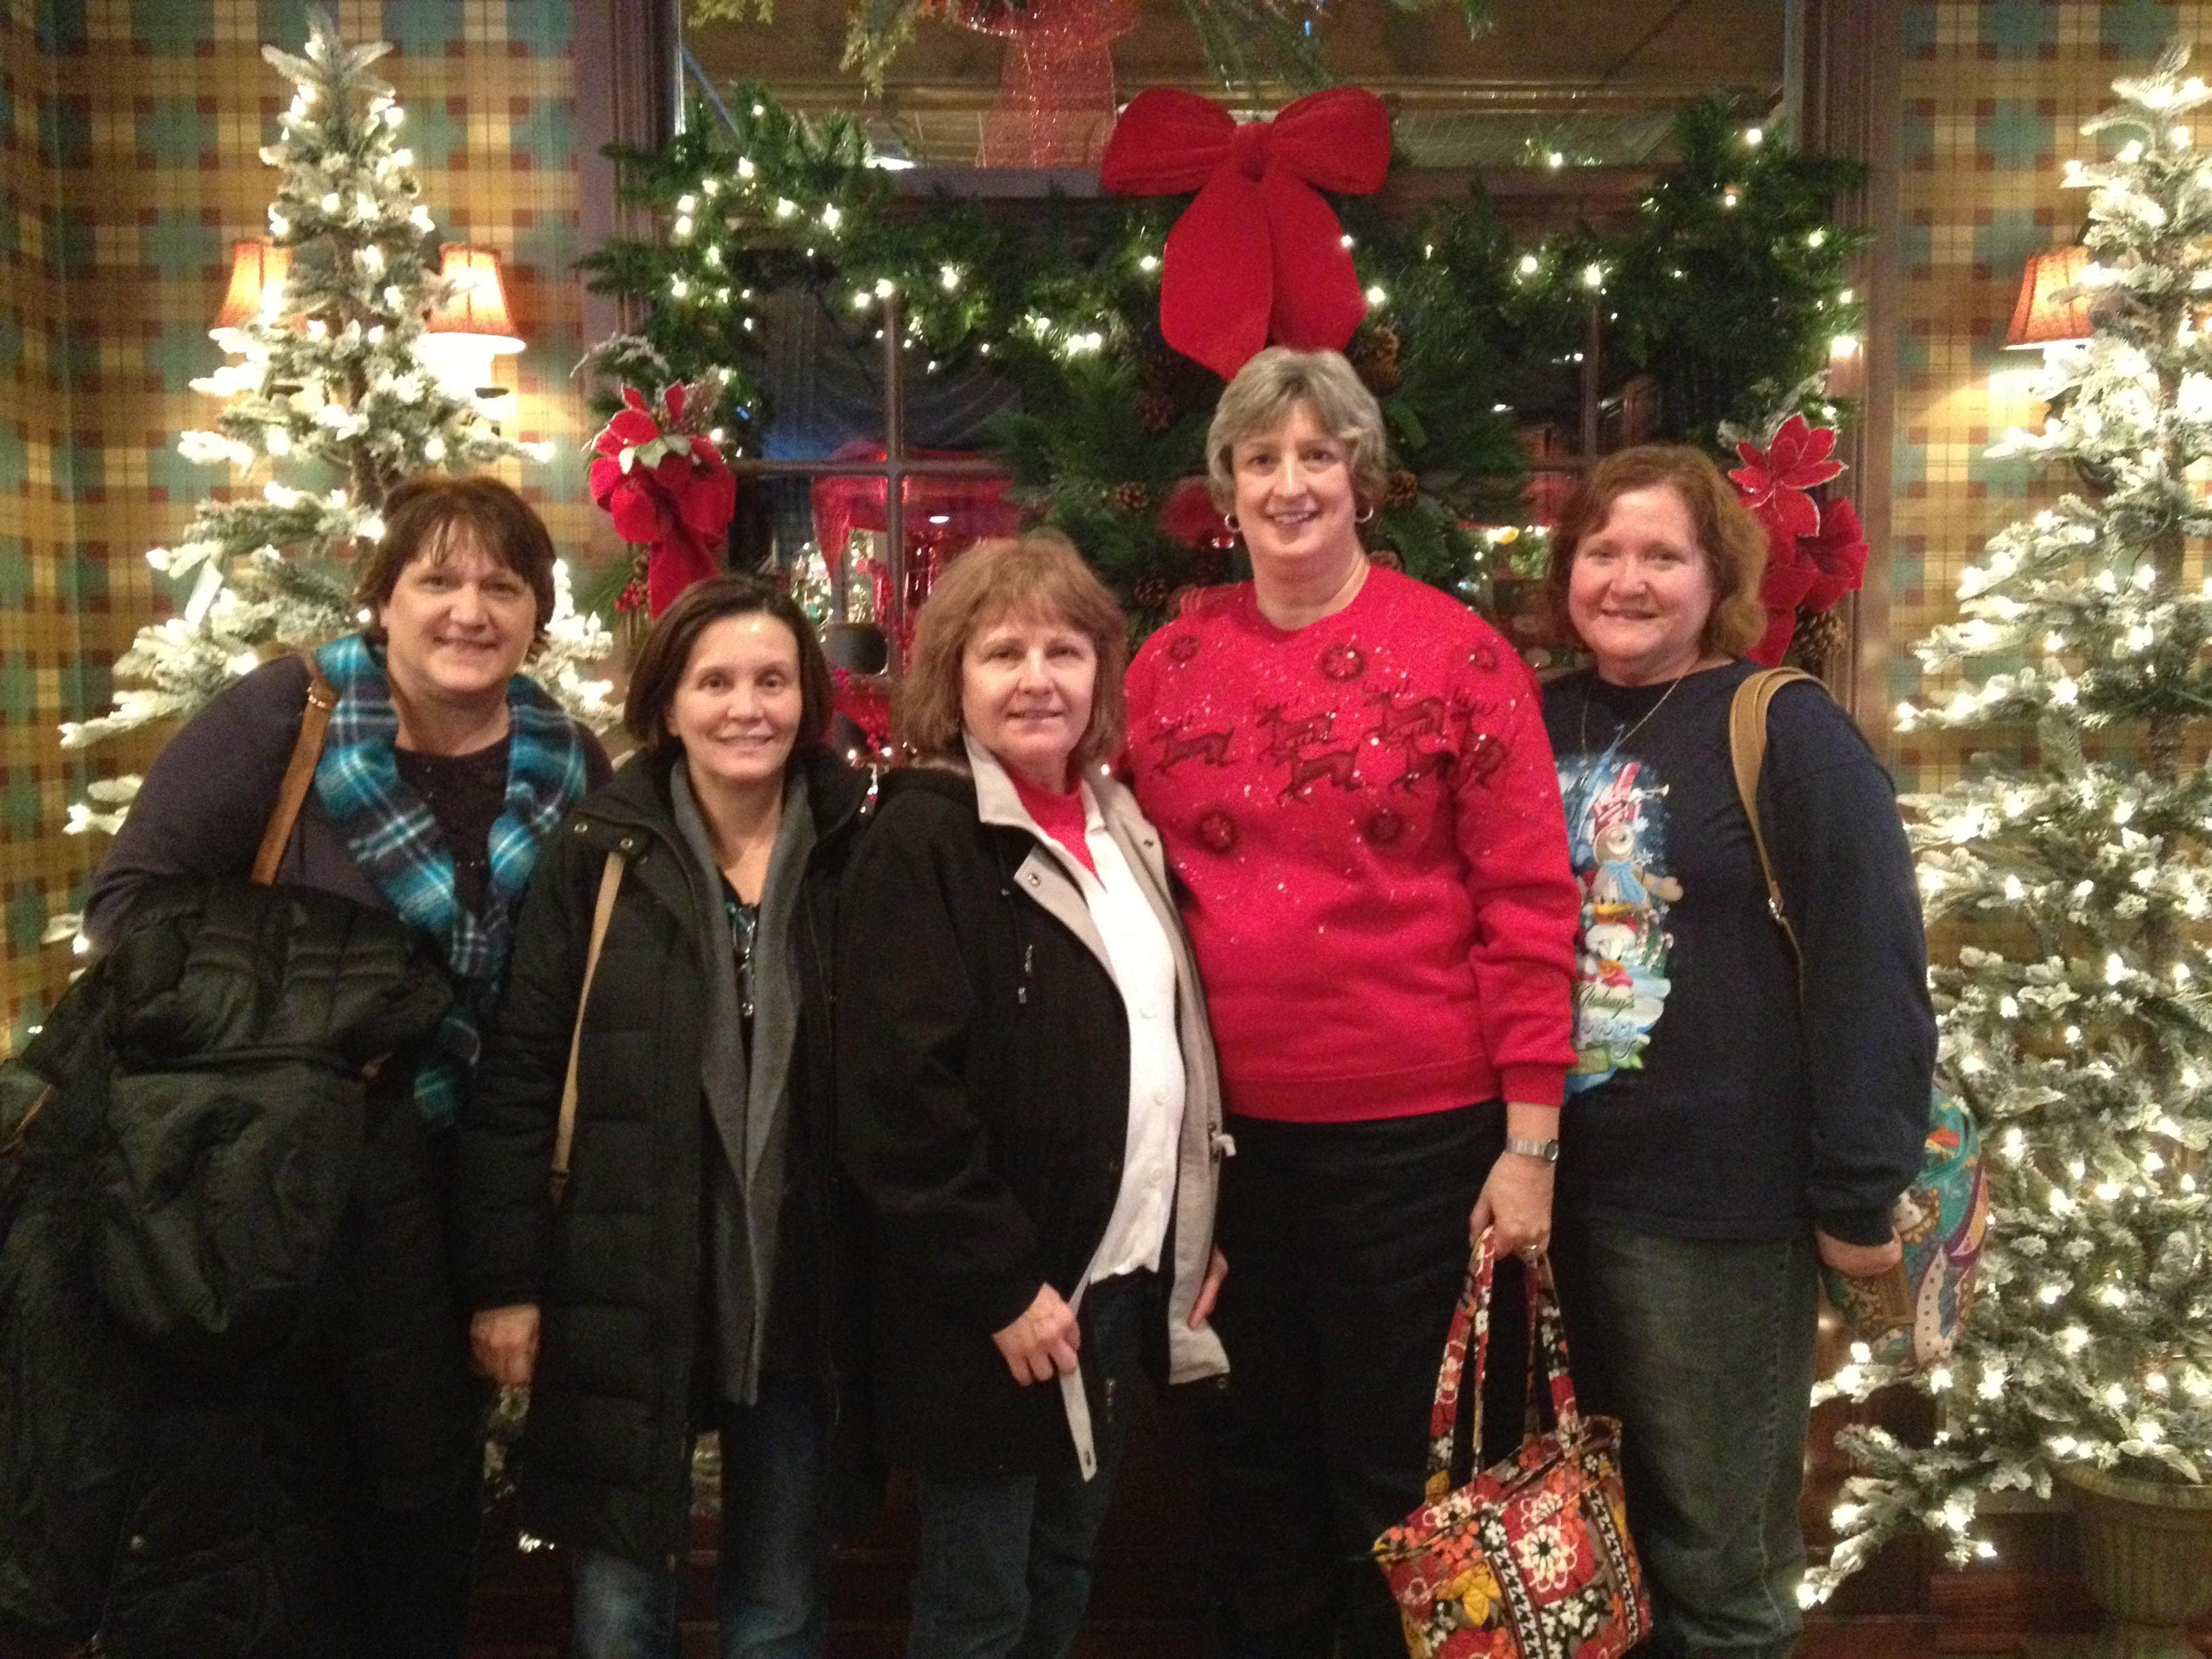 Pictured from L to R: Margie L, Selma, Alice F, Nancy B and Debbie R